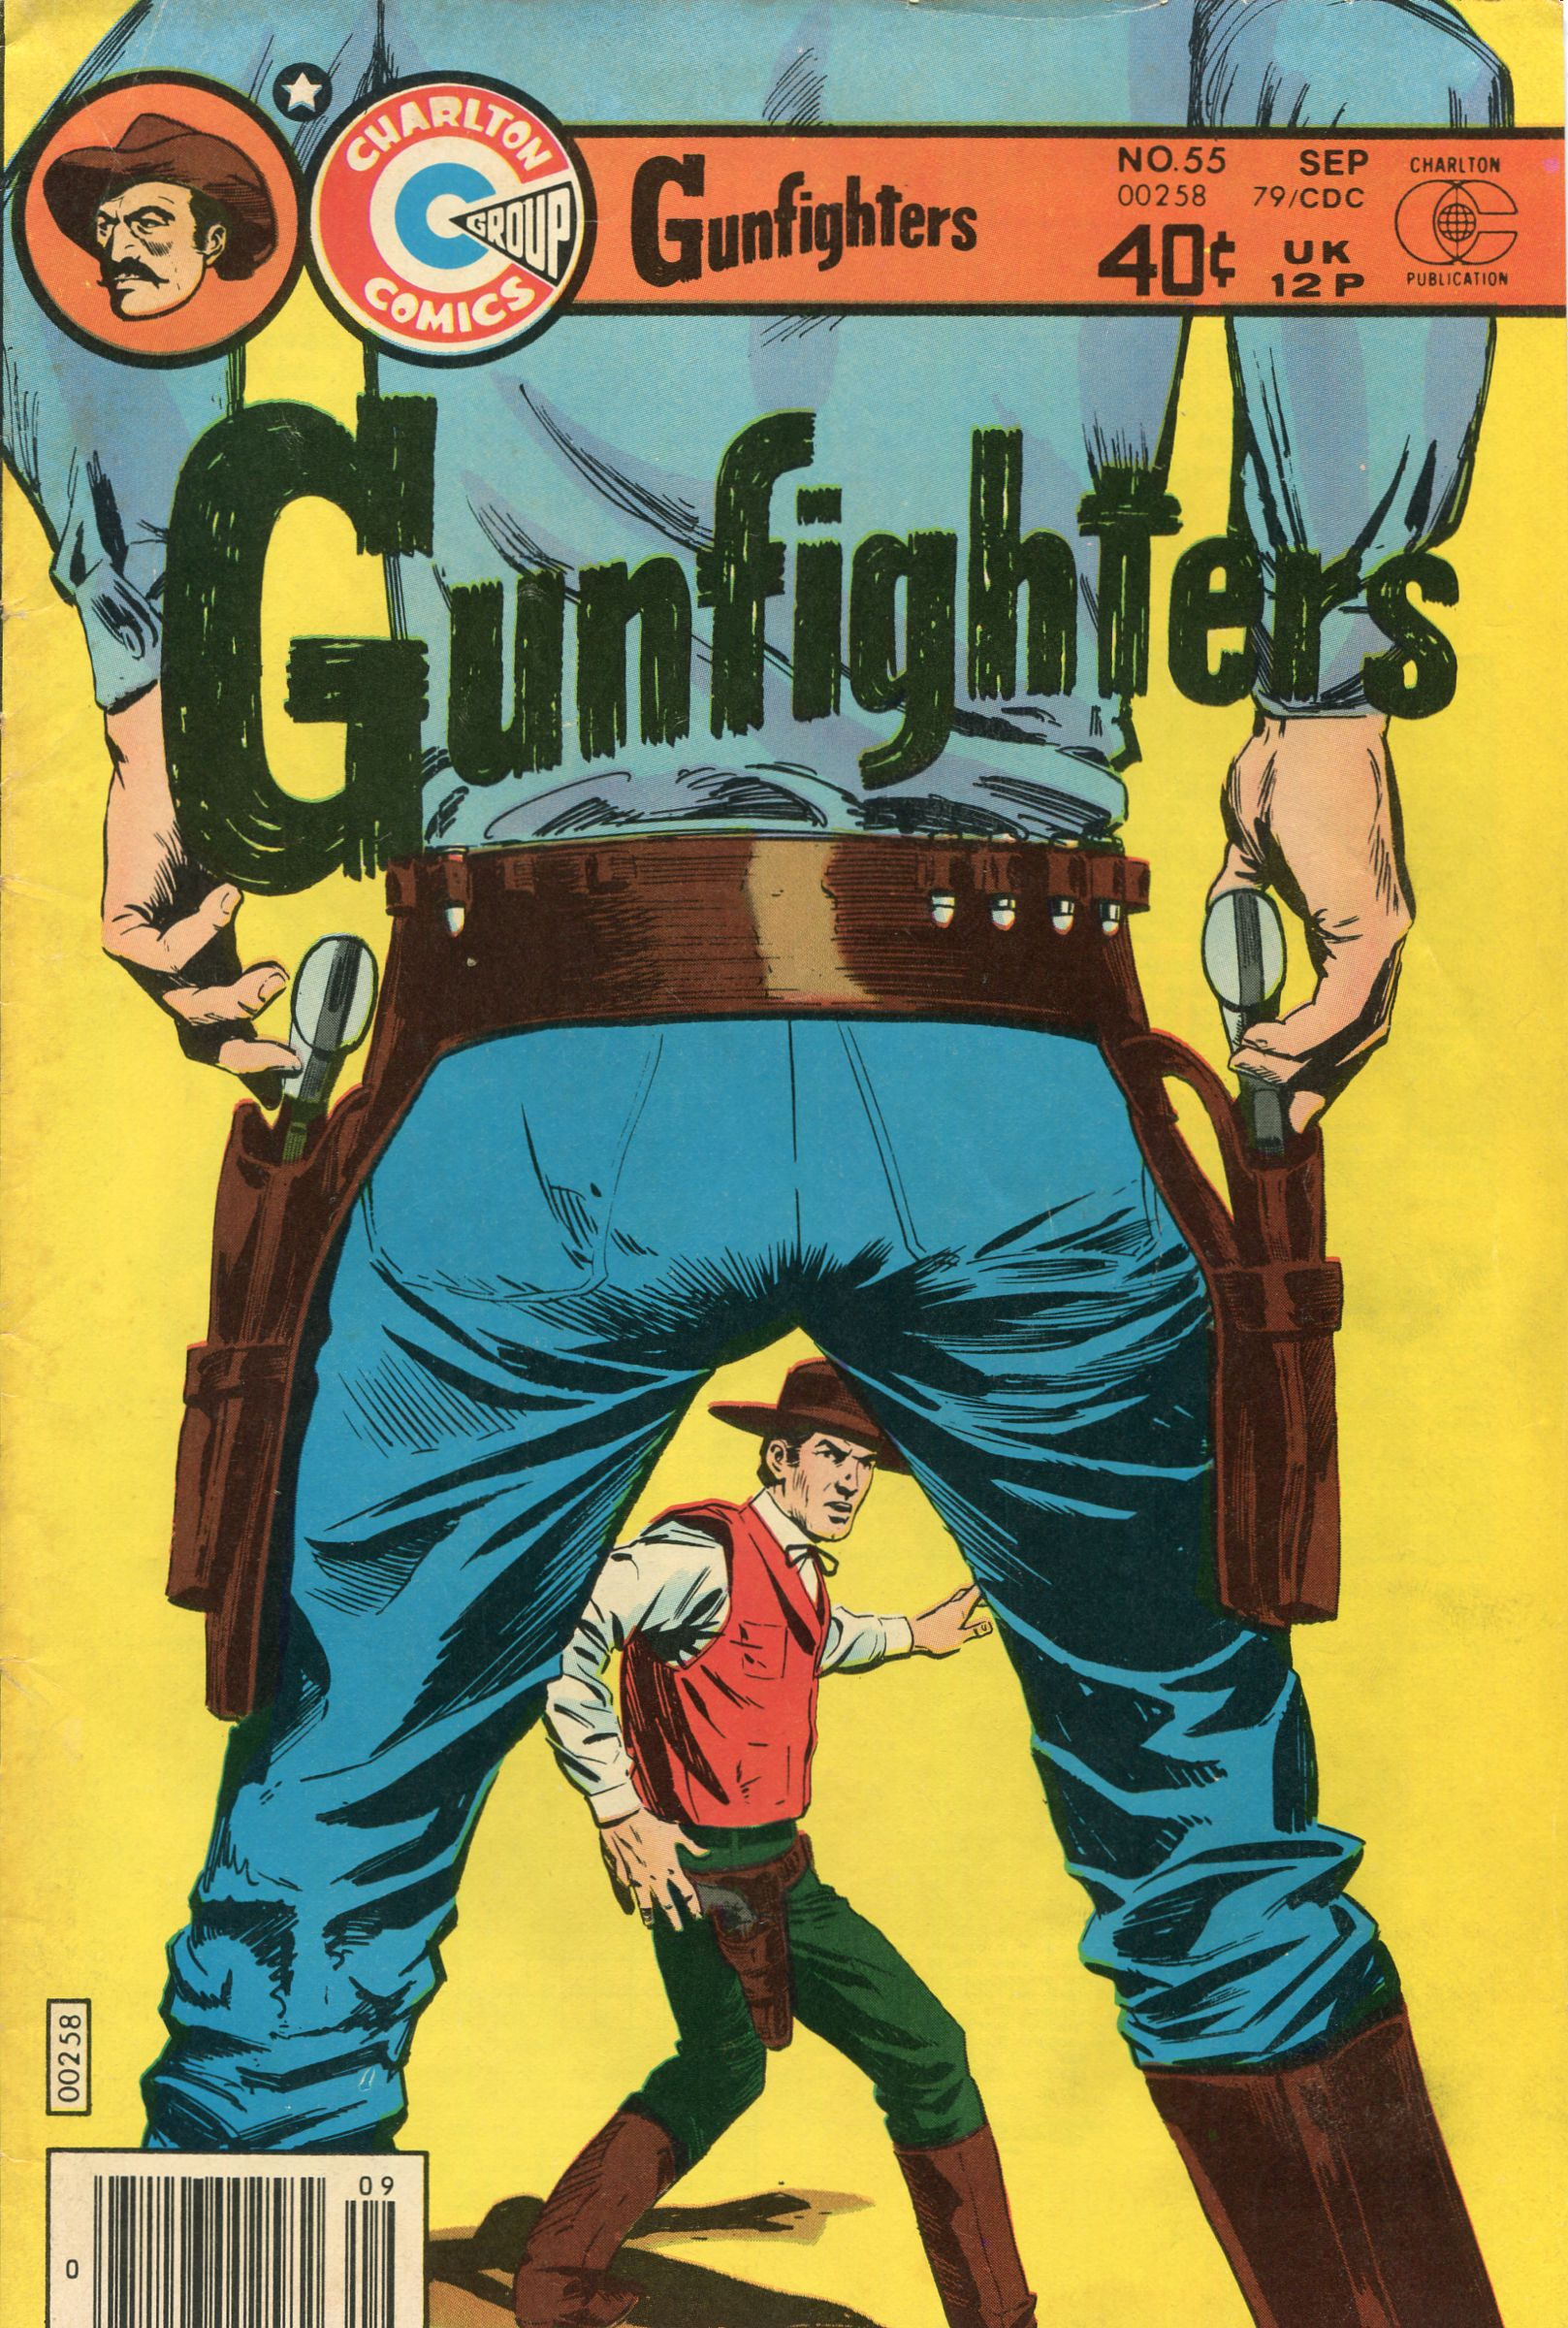 Gunfighters #55